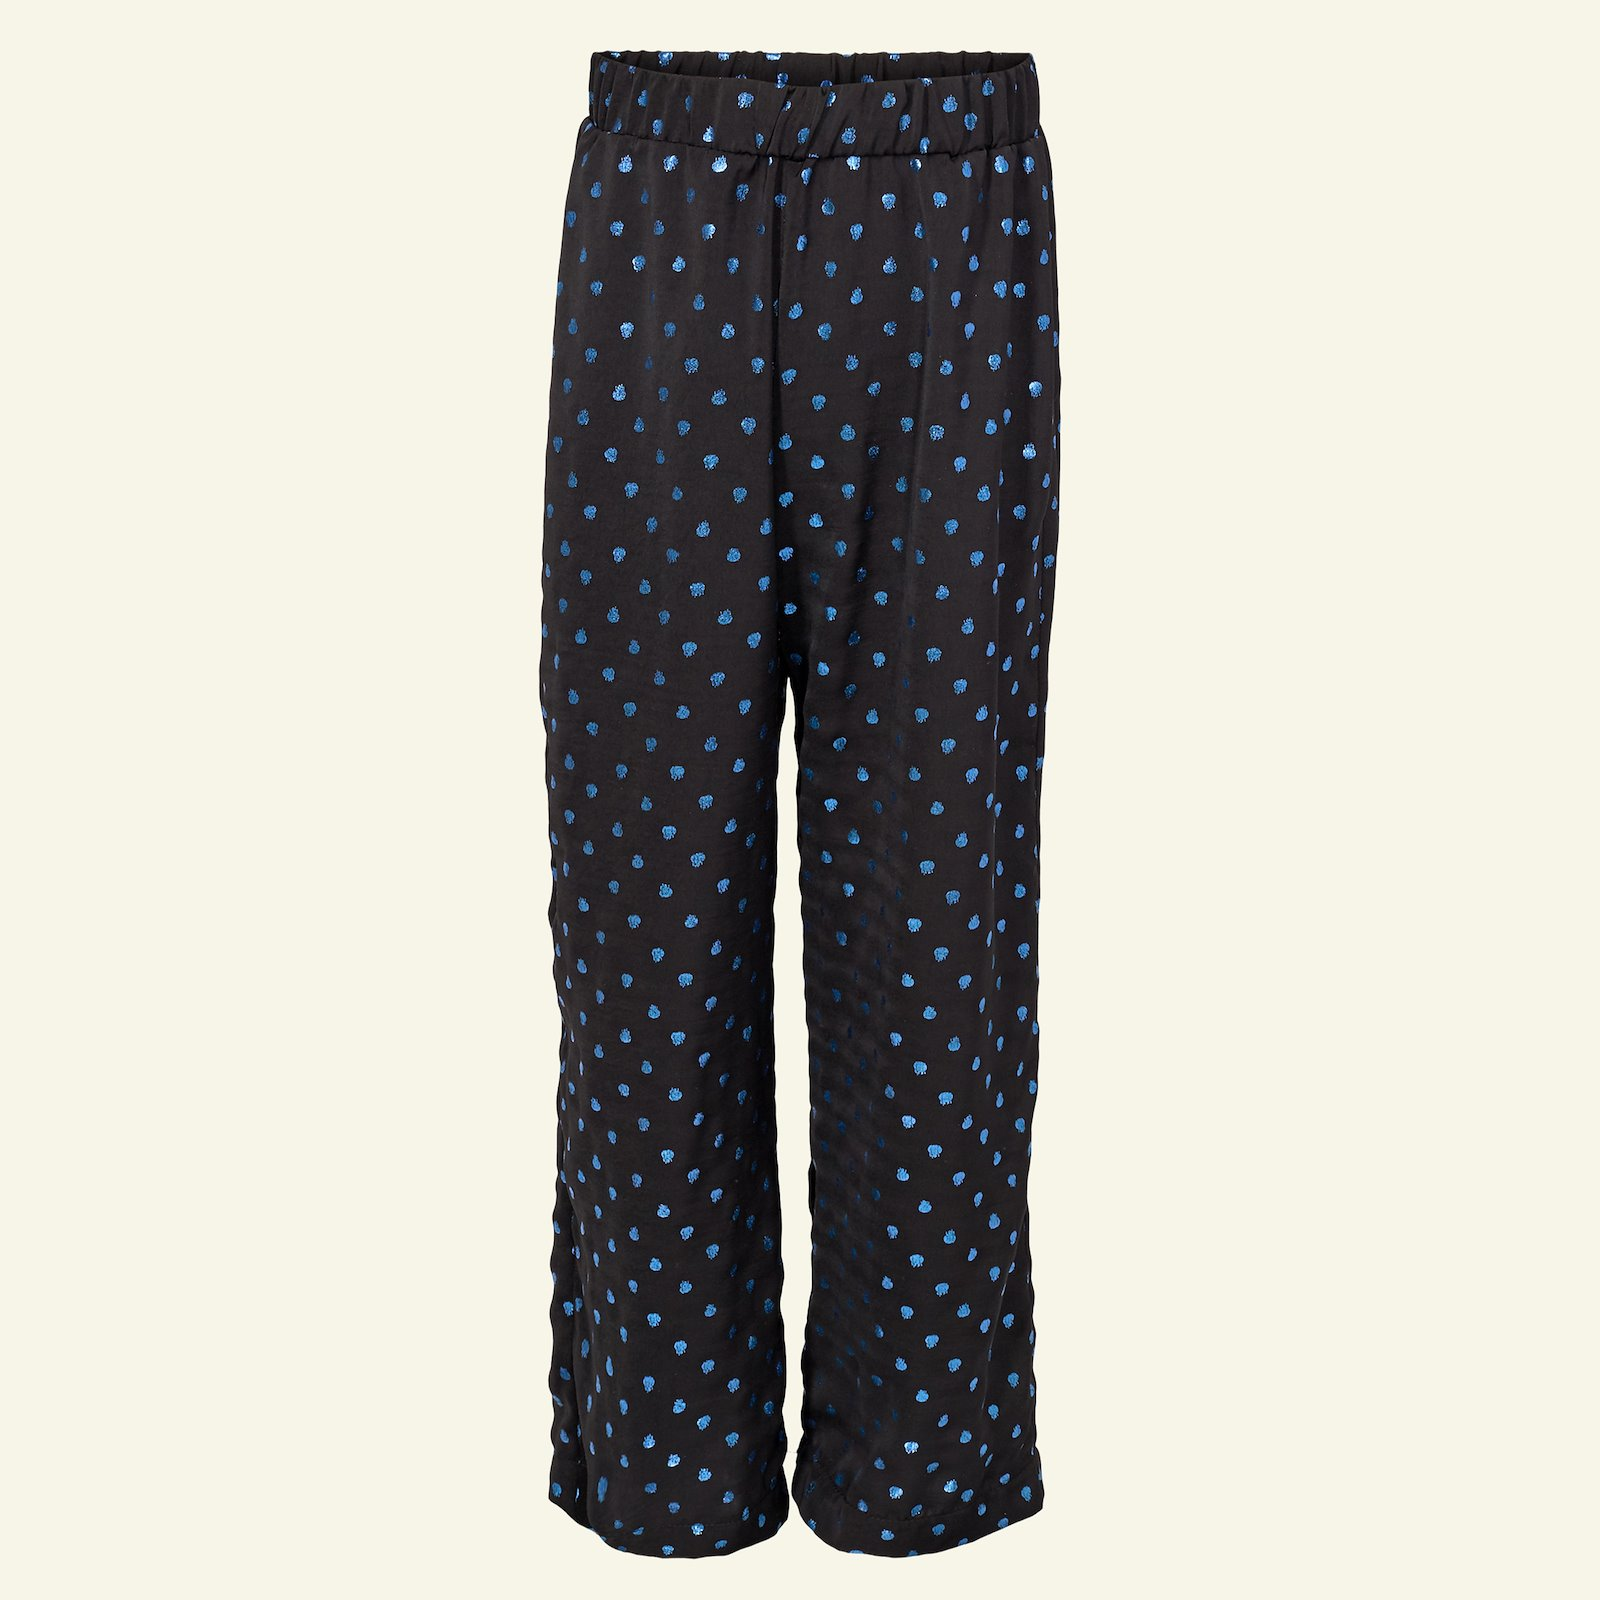 High waist and wide lege trouser, 110/5y p60034_570100_sskit